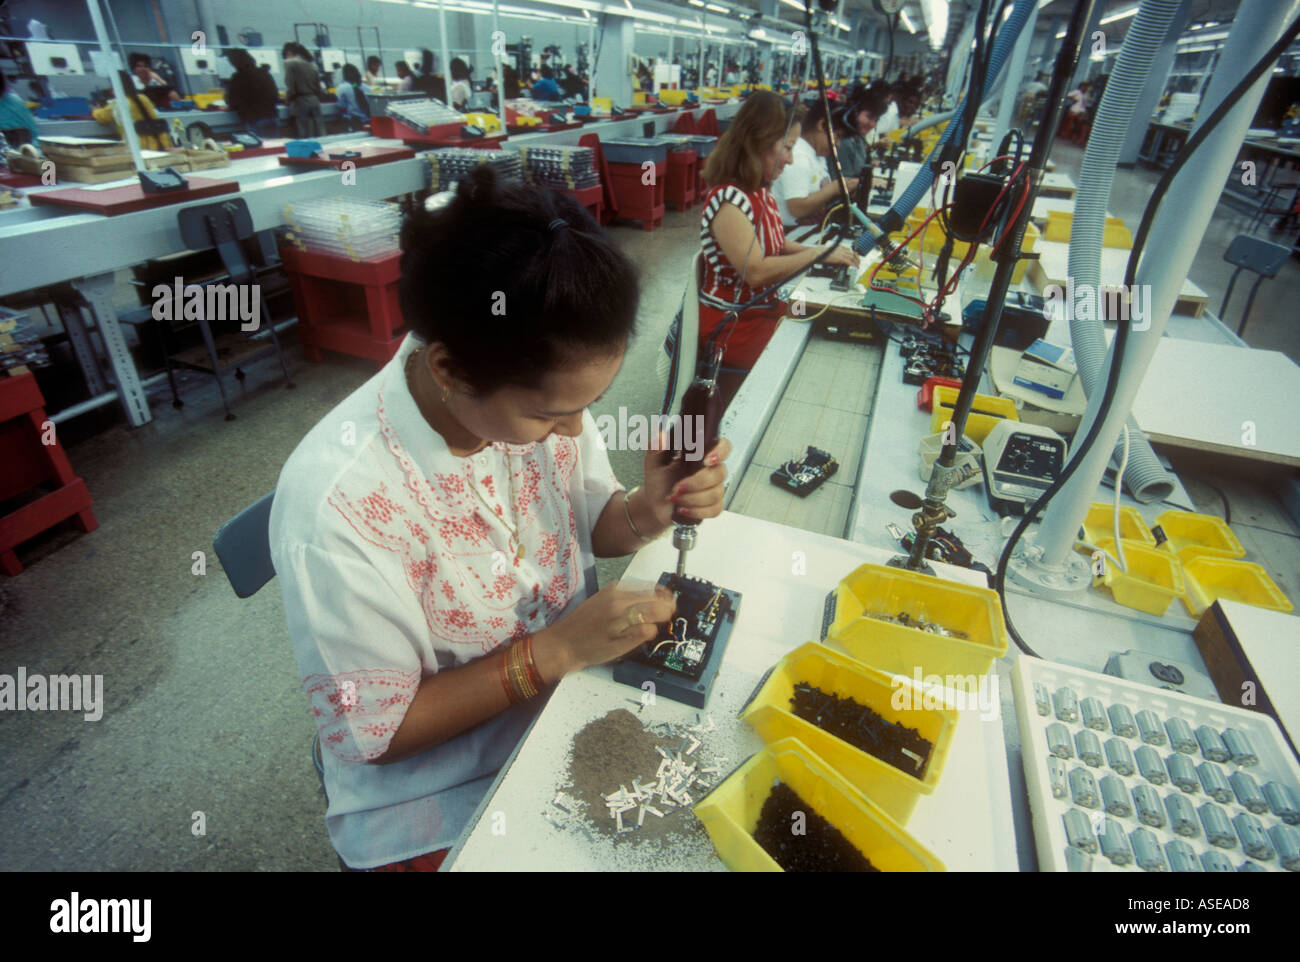 women workers at an assembly factory - Stock Image